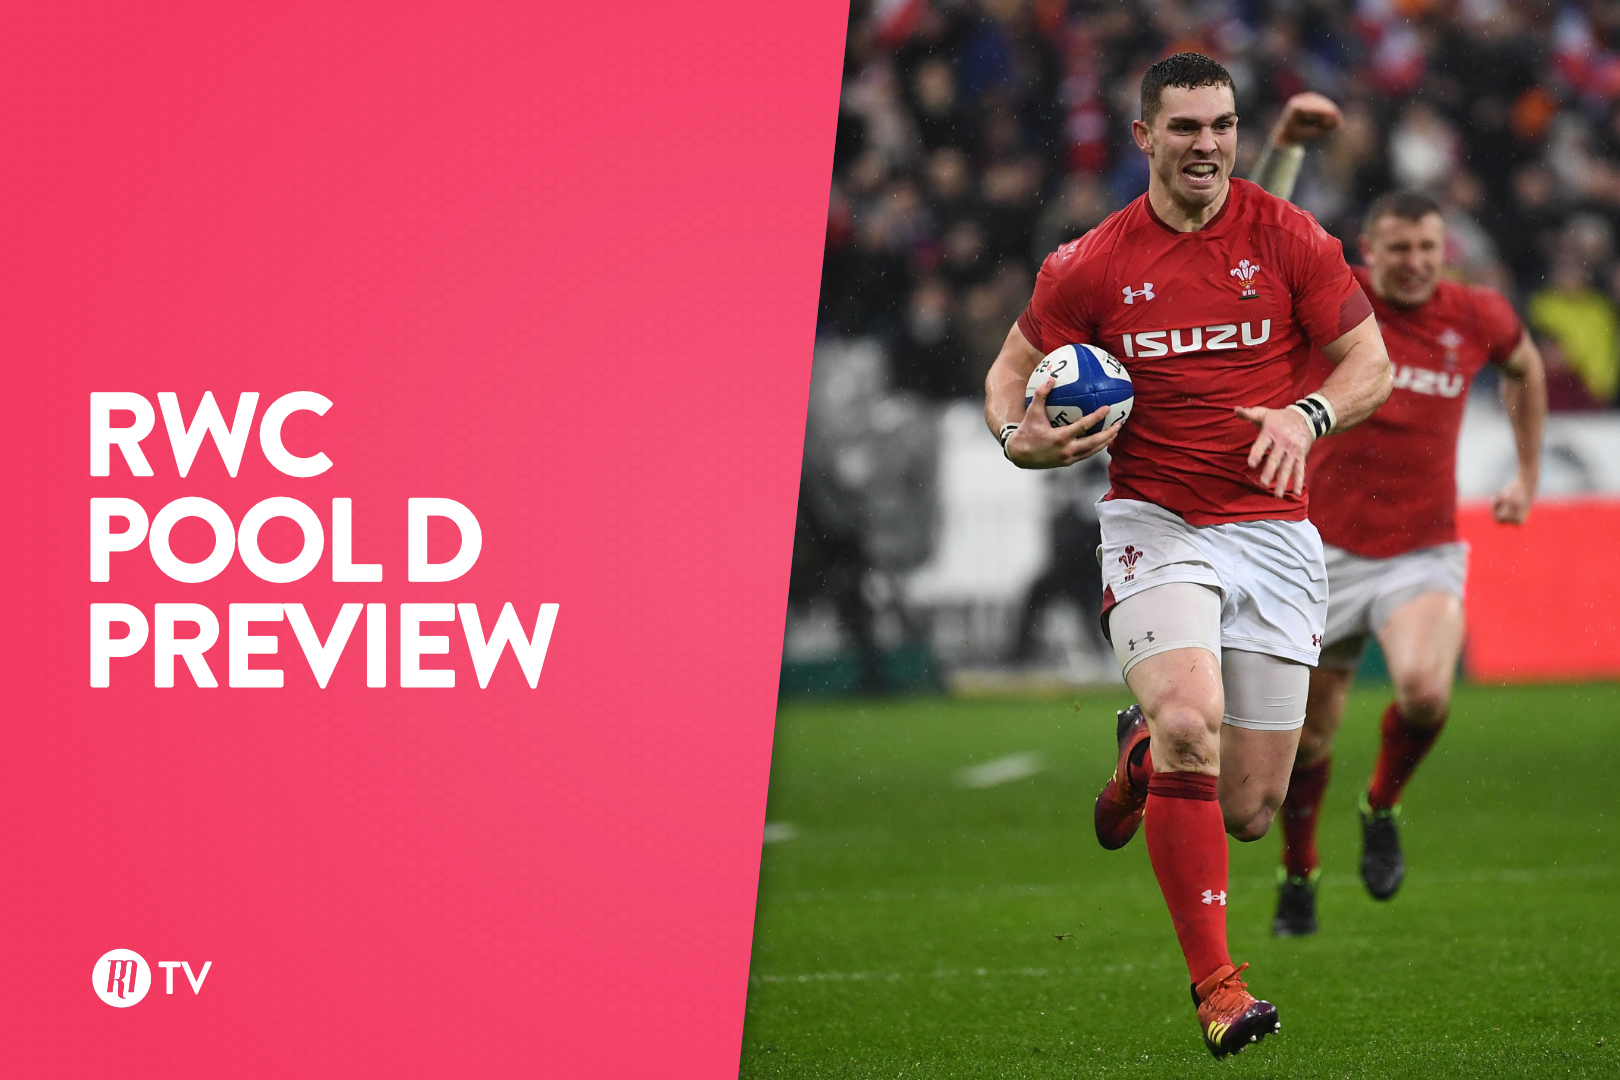 RWC Pool D Preview: Fantasy Show